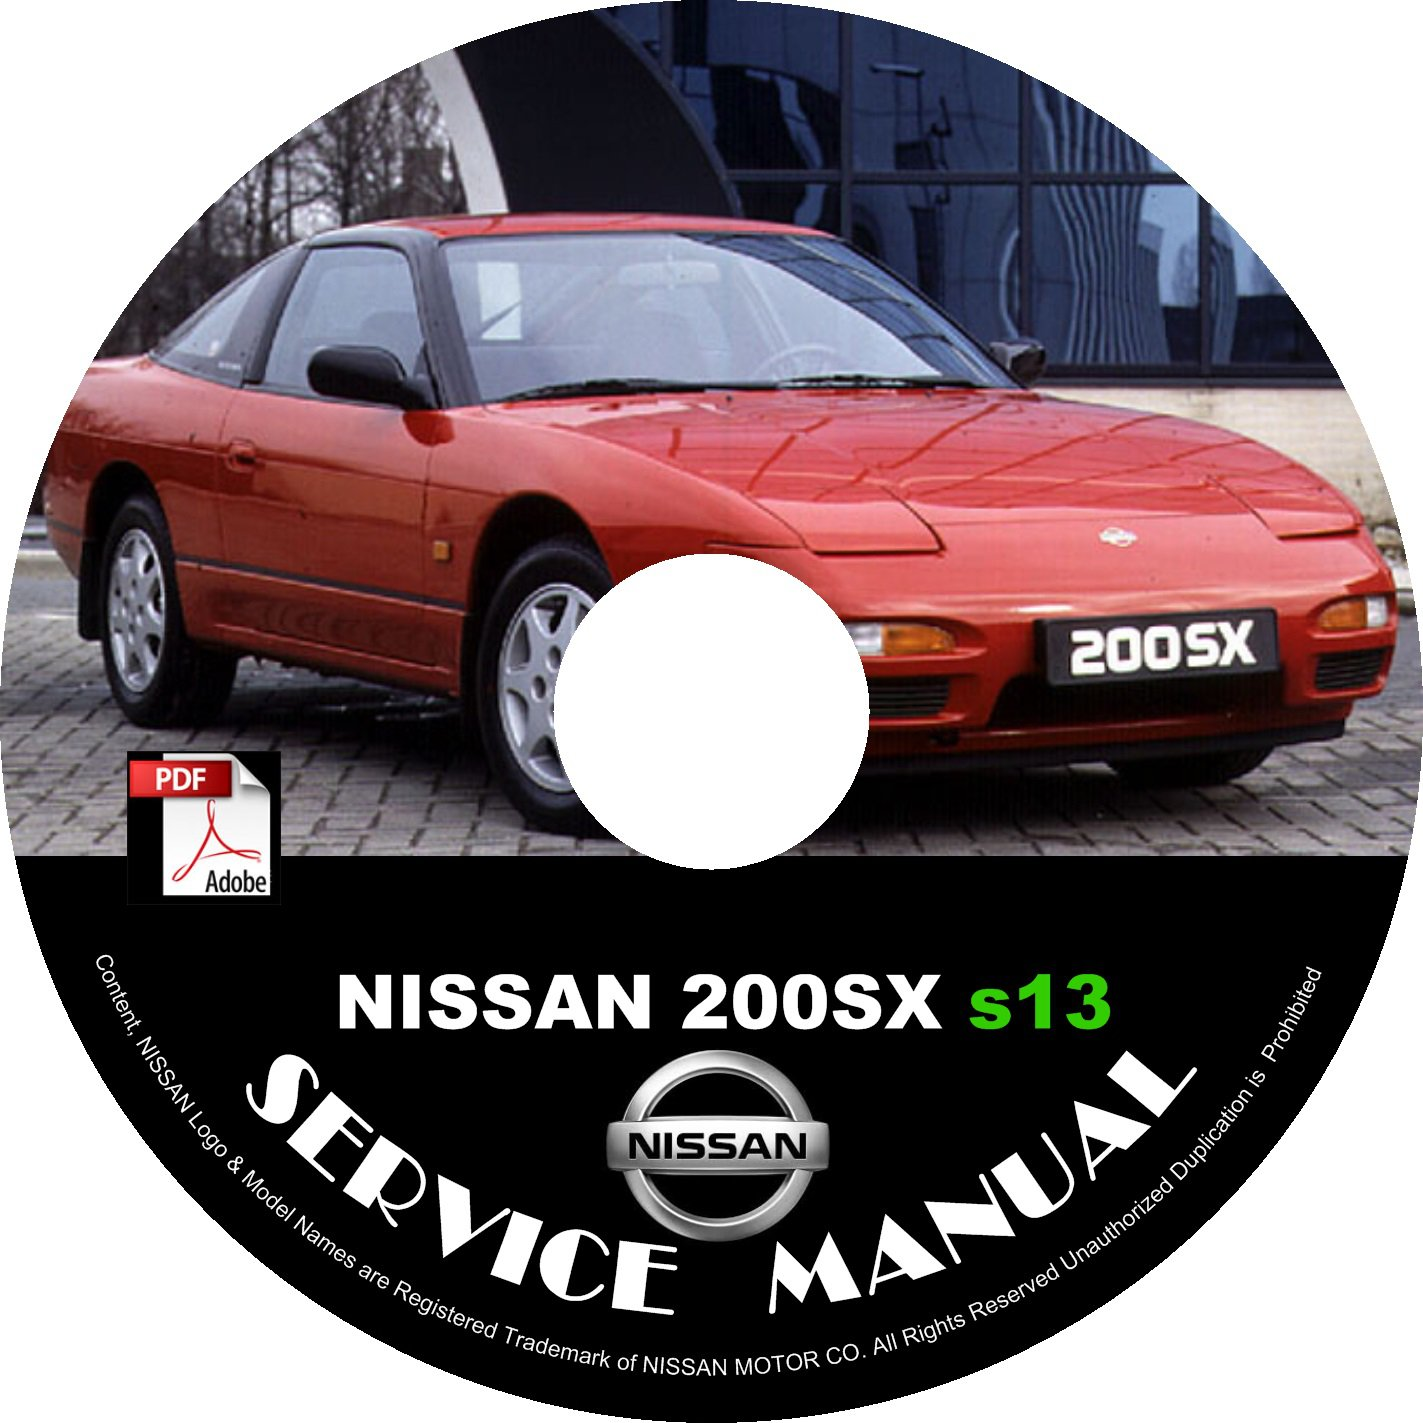 1989 Nissan 200sx s13 Factory Service Repair Shop Manual on CD Fix Repair Rebuild 89 Workshop Guide